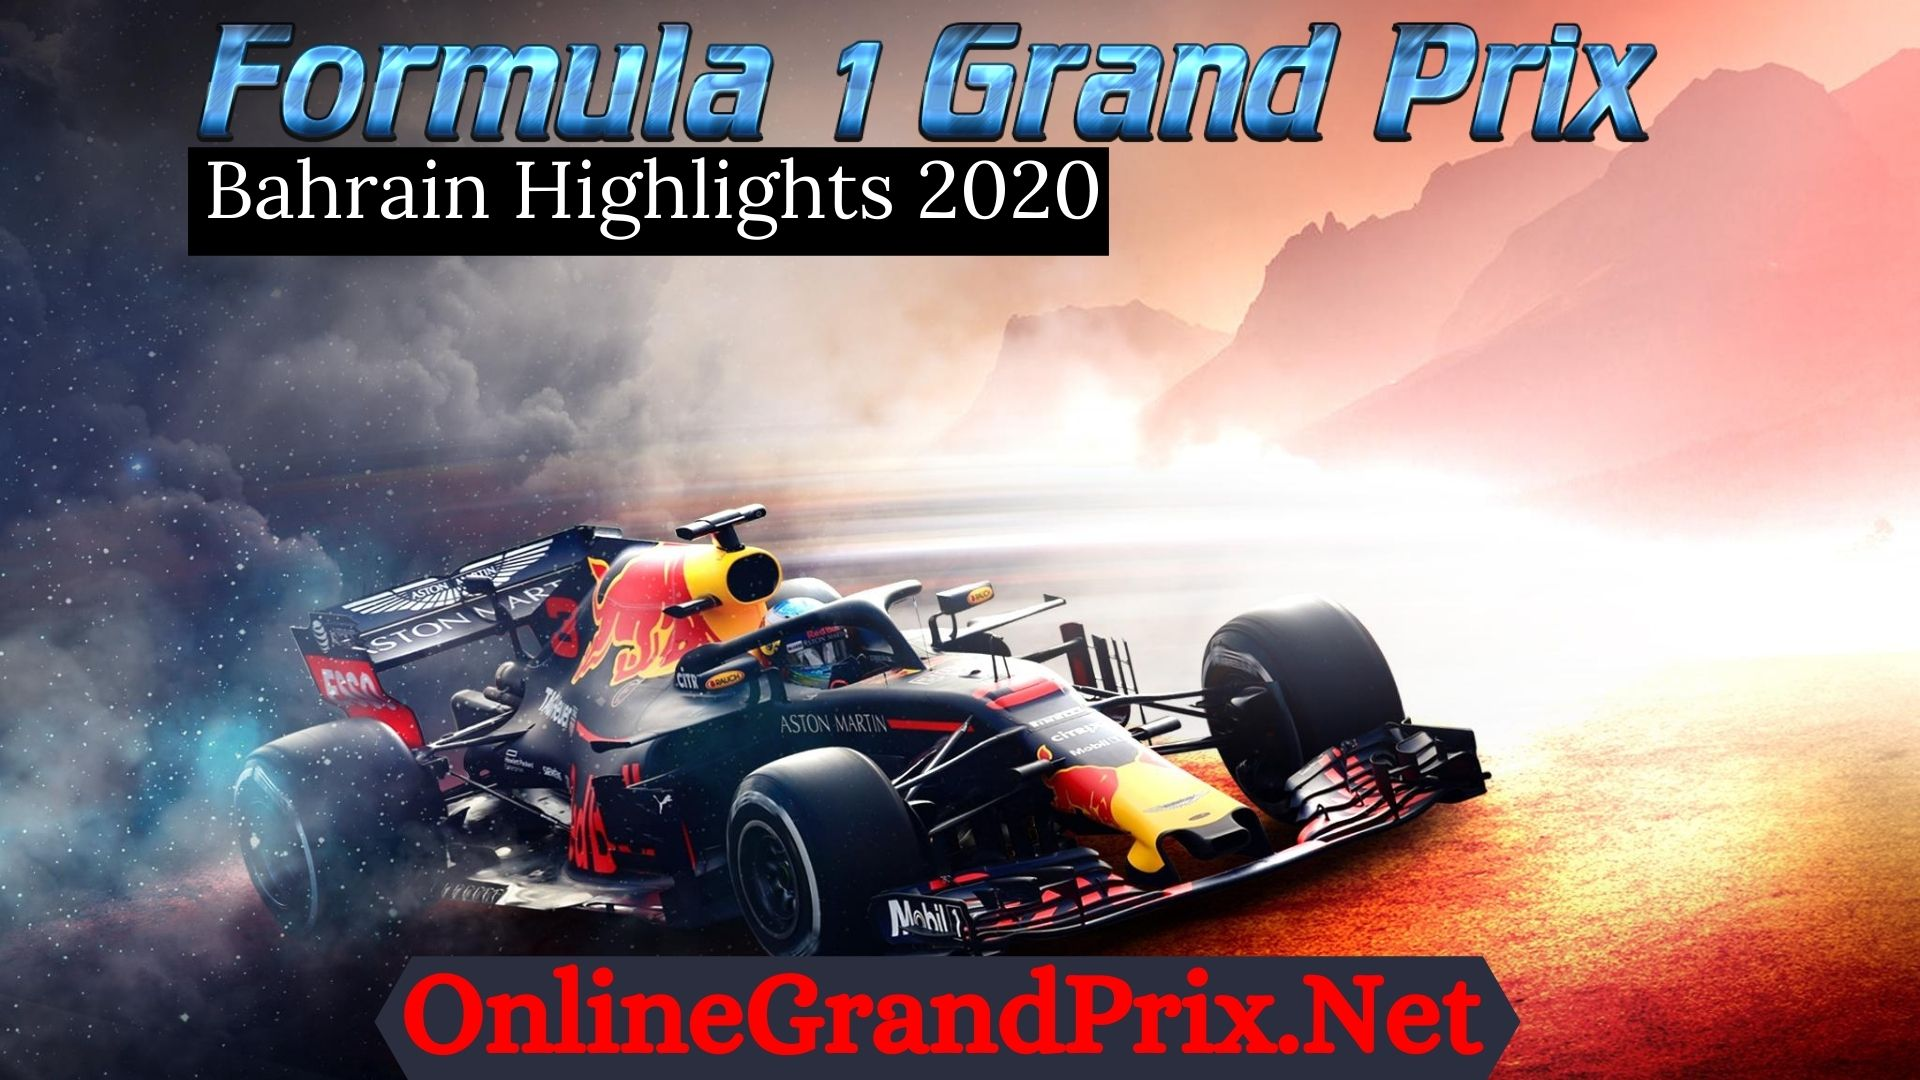 Bahrain GP F1 Highlights 2020